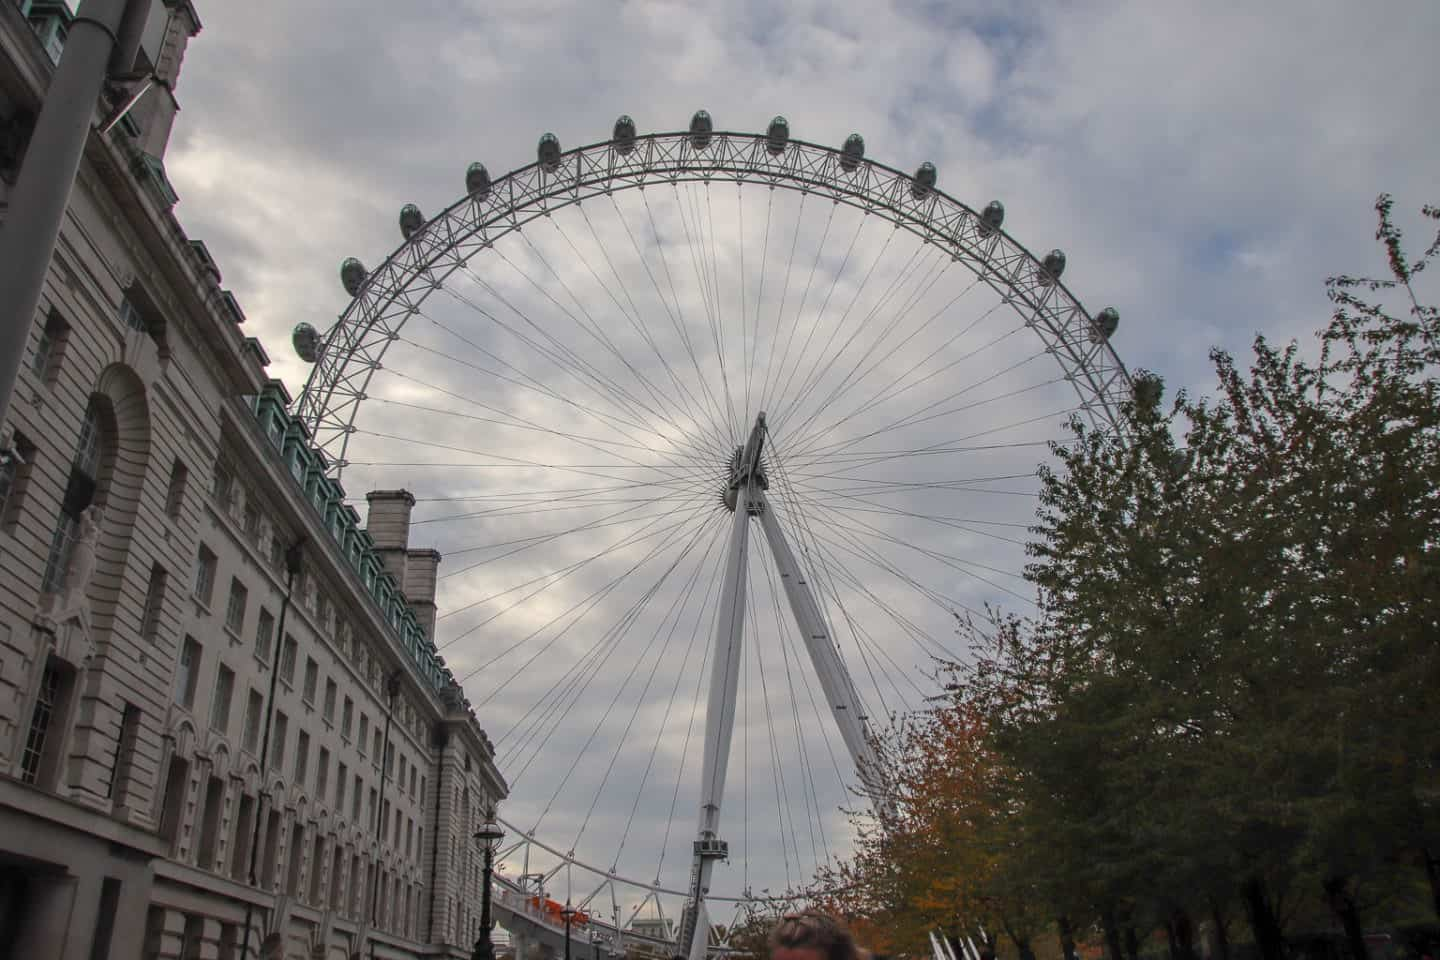 The London Eye has one of the best views of London